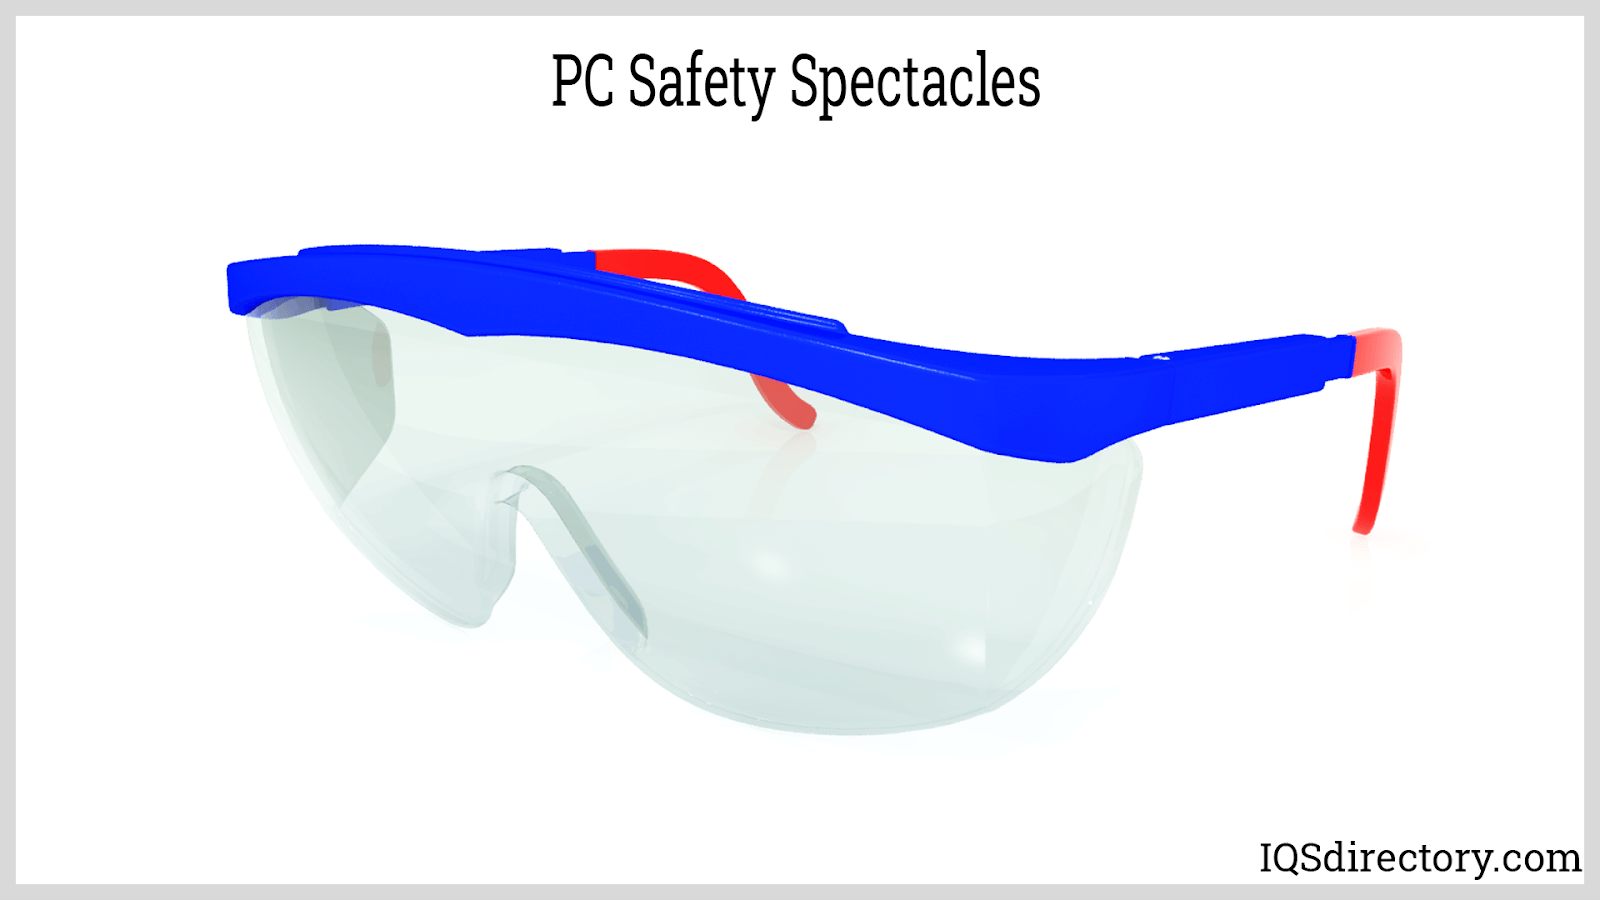 PC Safety Spectacles